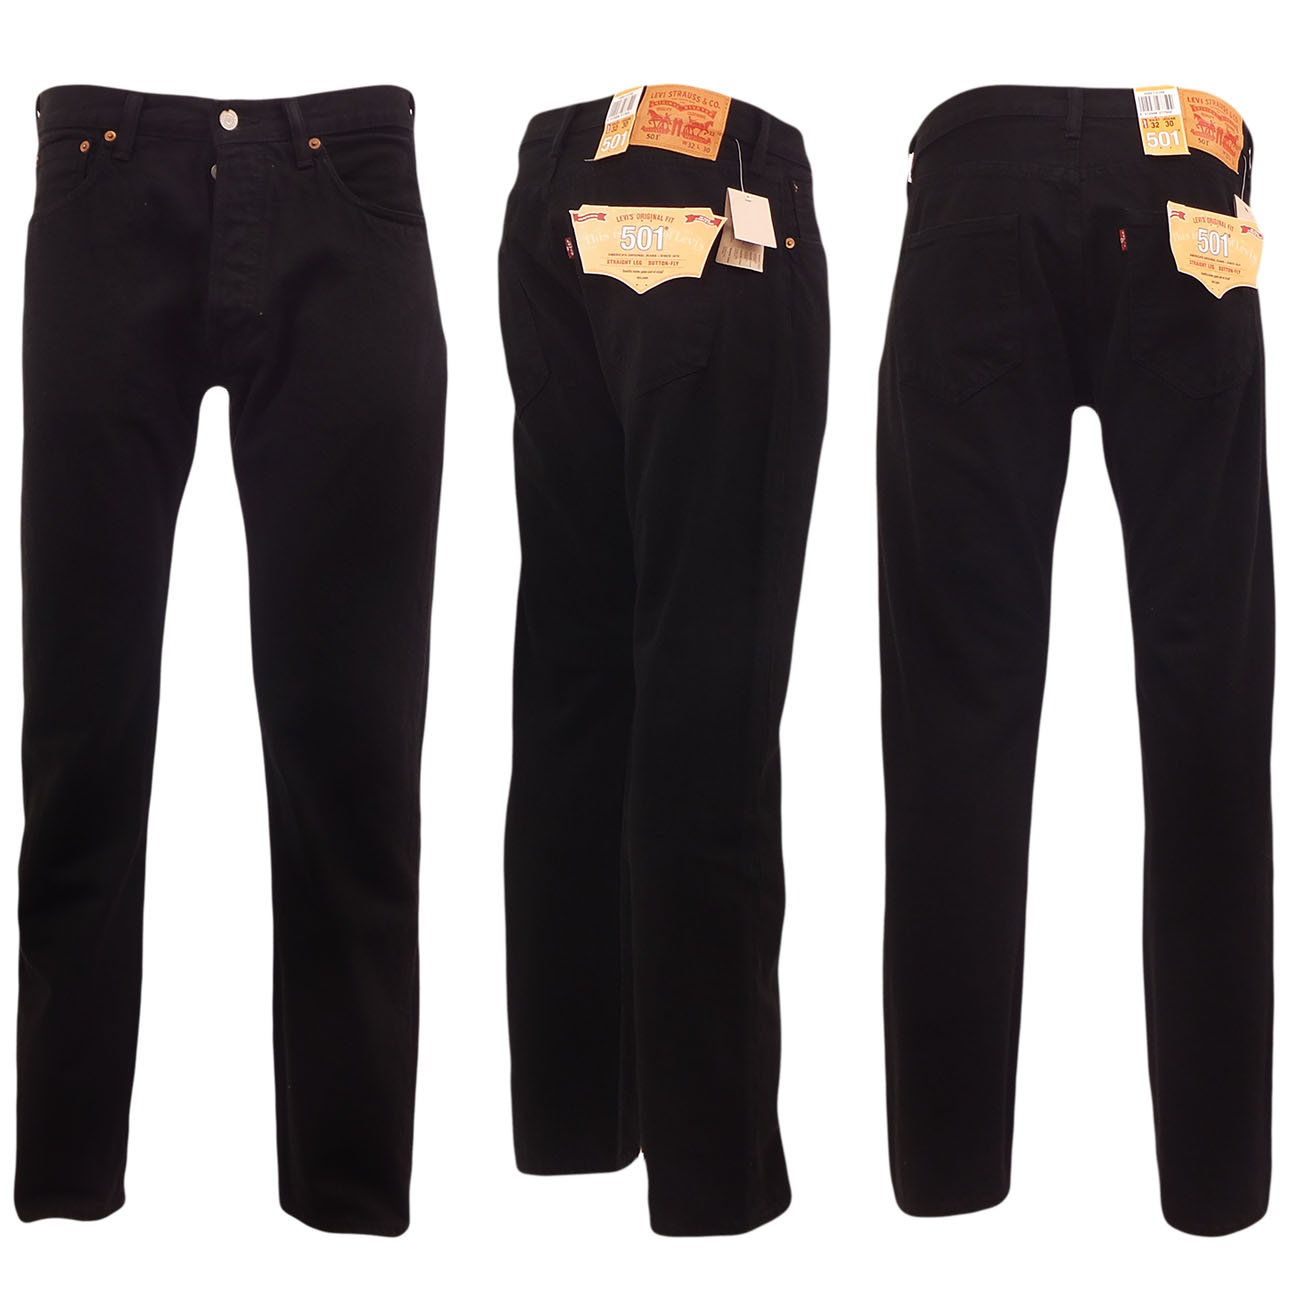 Levi-501-Jeans-Mens-Levi-039-s-Strauss-Denim-Straight-Fit-Trouser-Pant-Button-Fly